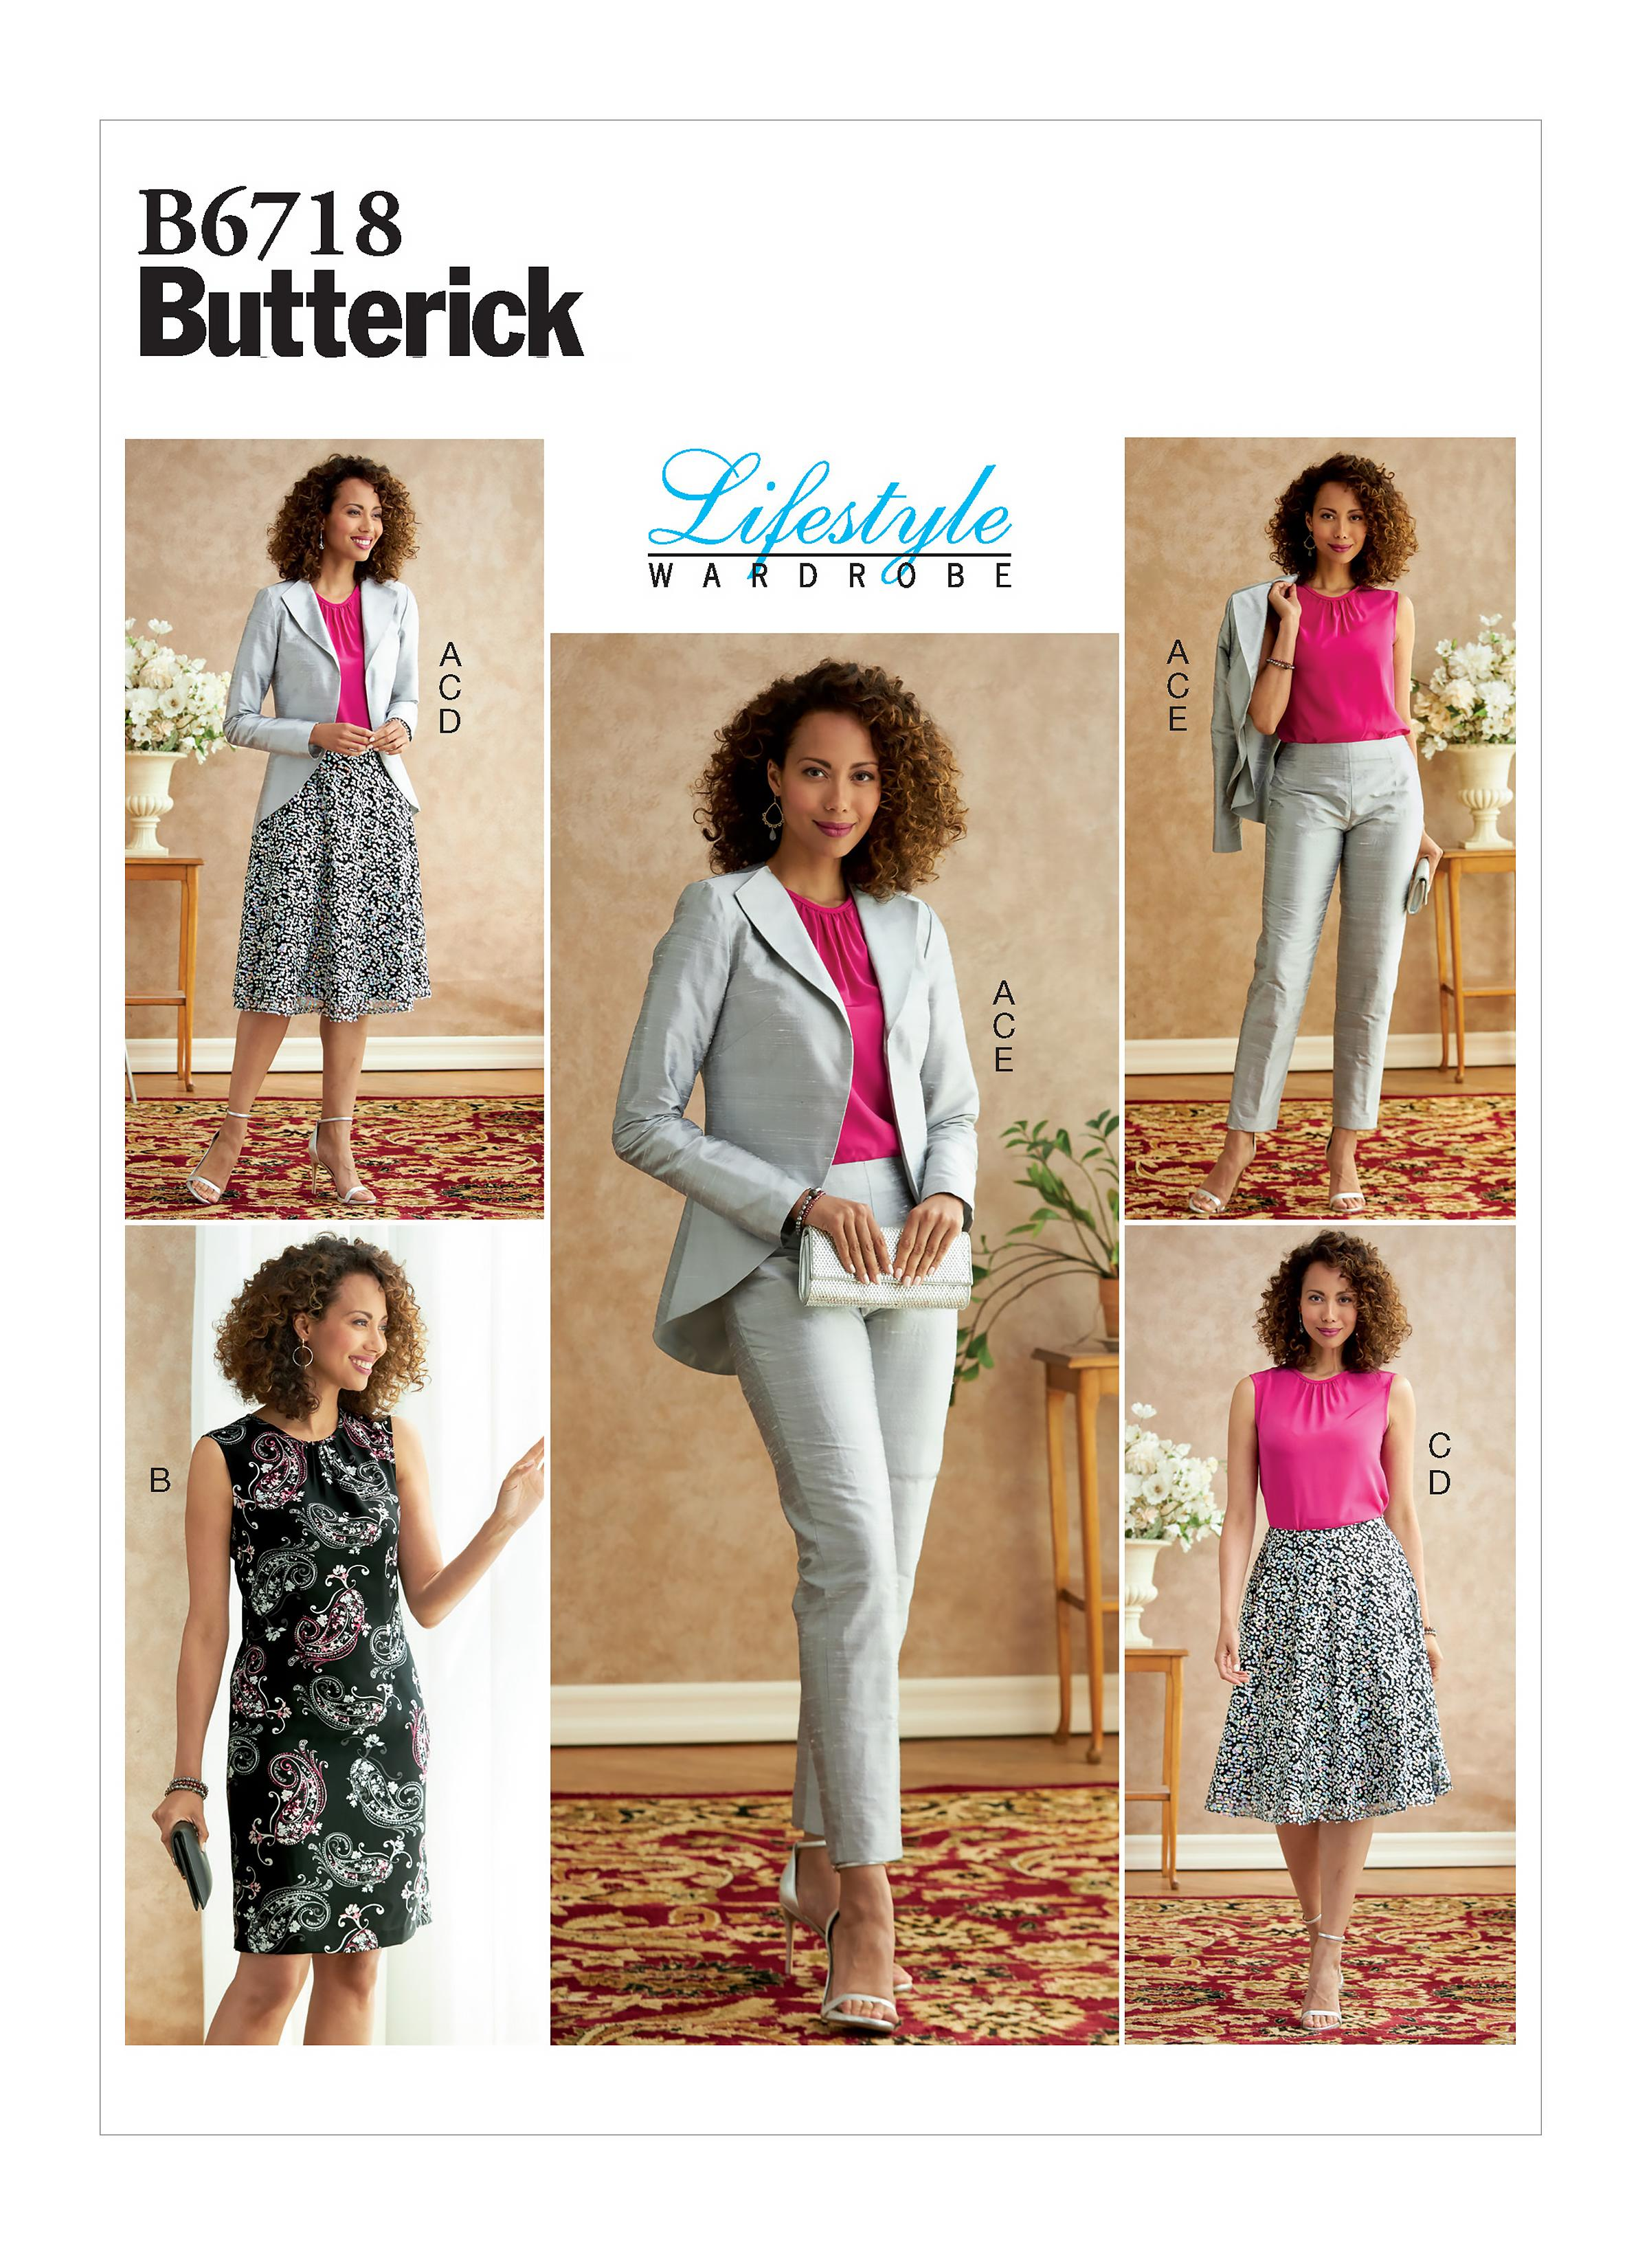 Butterick B6718 Misses' Jacket, Dress, Top, Skirt, & Pants